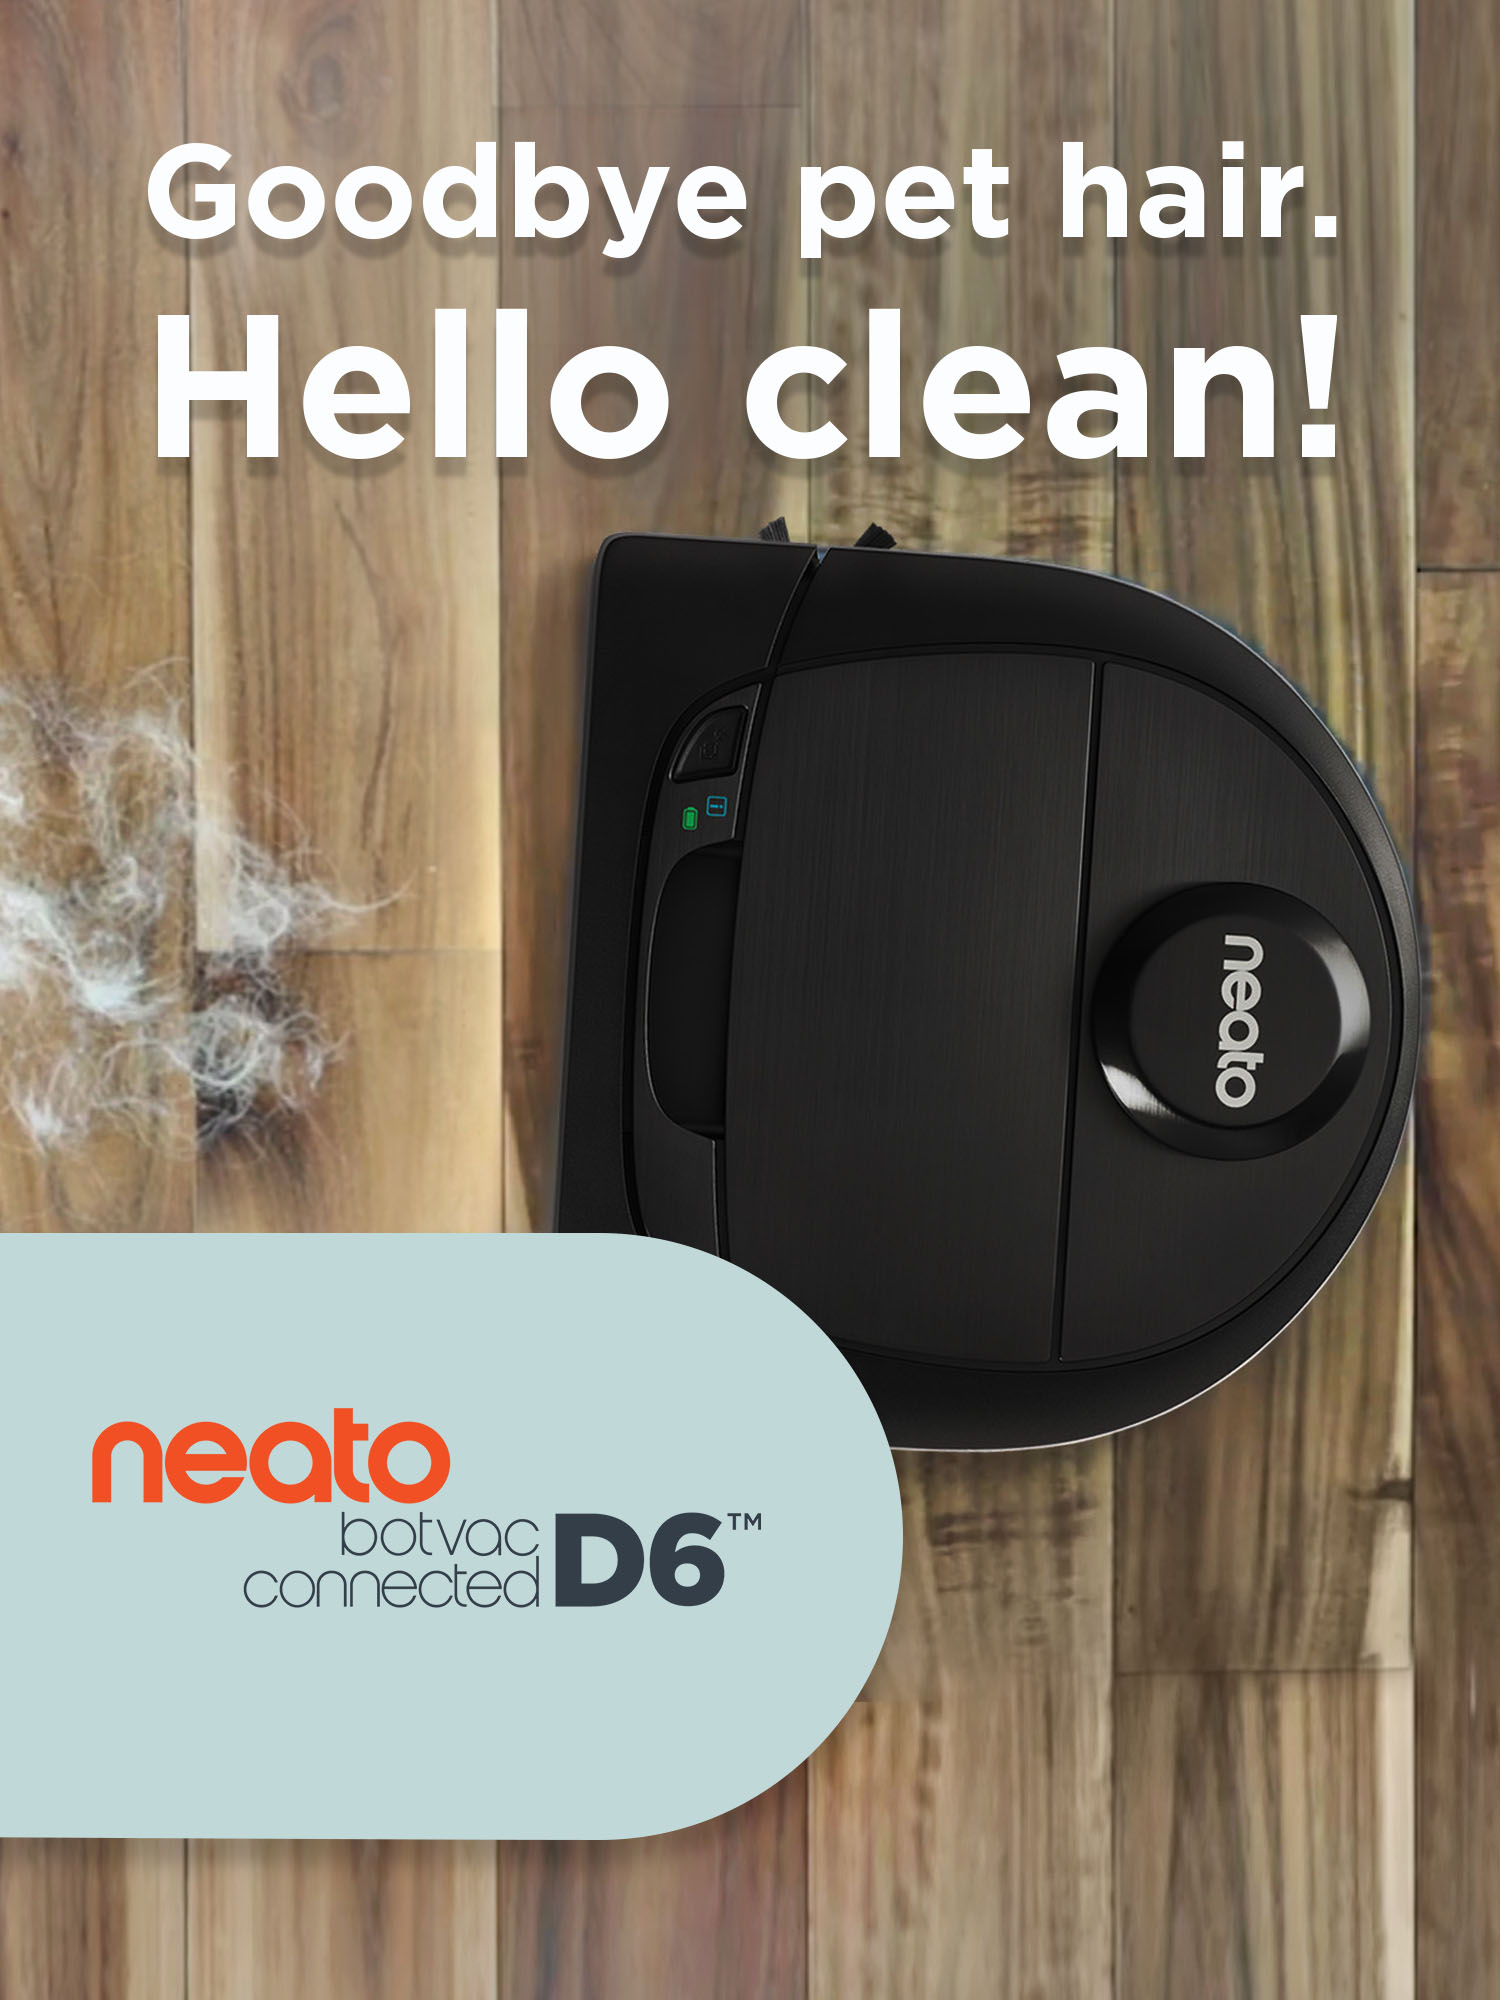 Goodbye pethair. Hello Clean. Neato Botvac D6 Connected